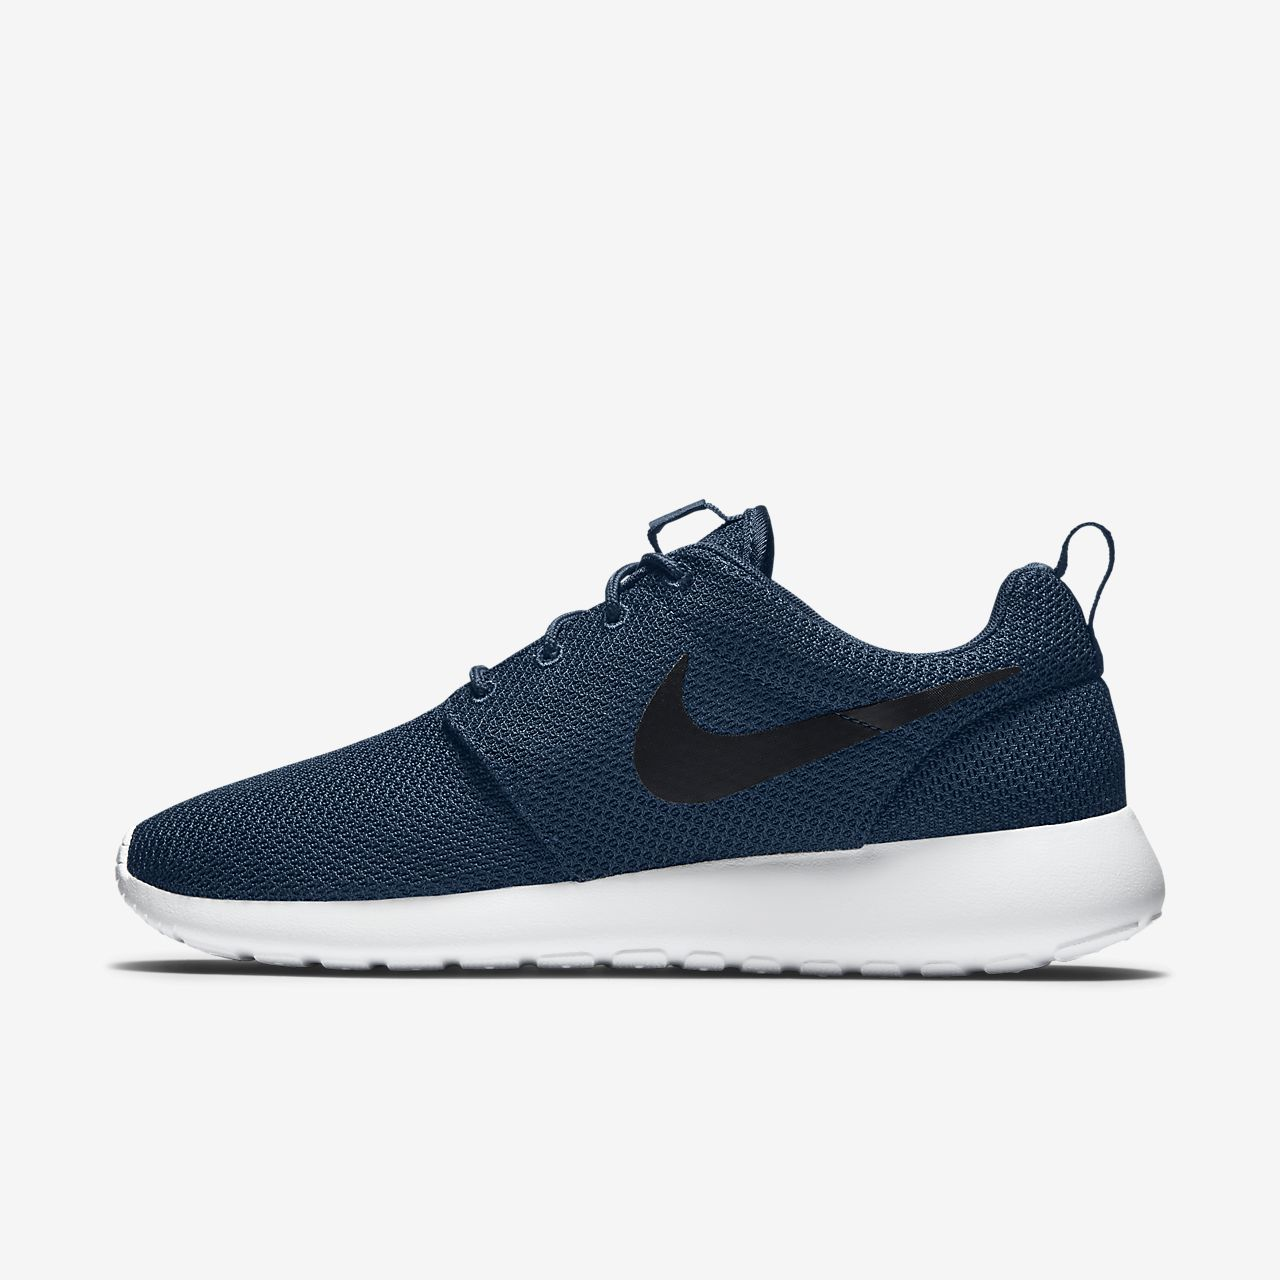 nike roshe one without socks